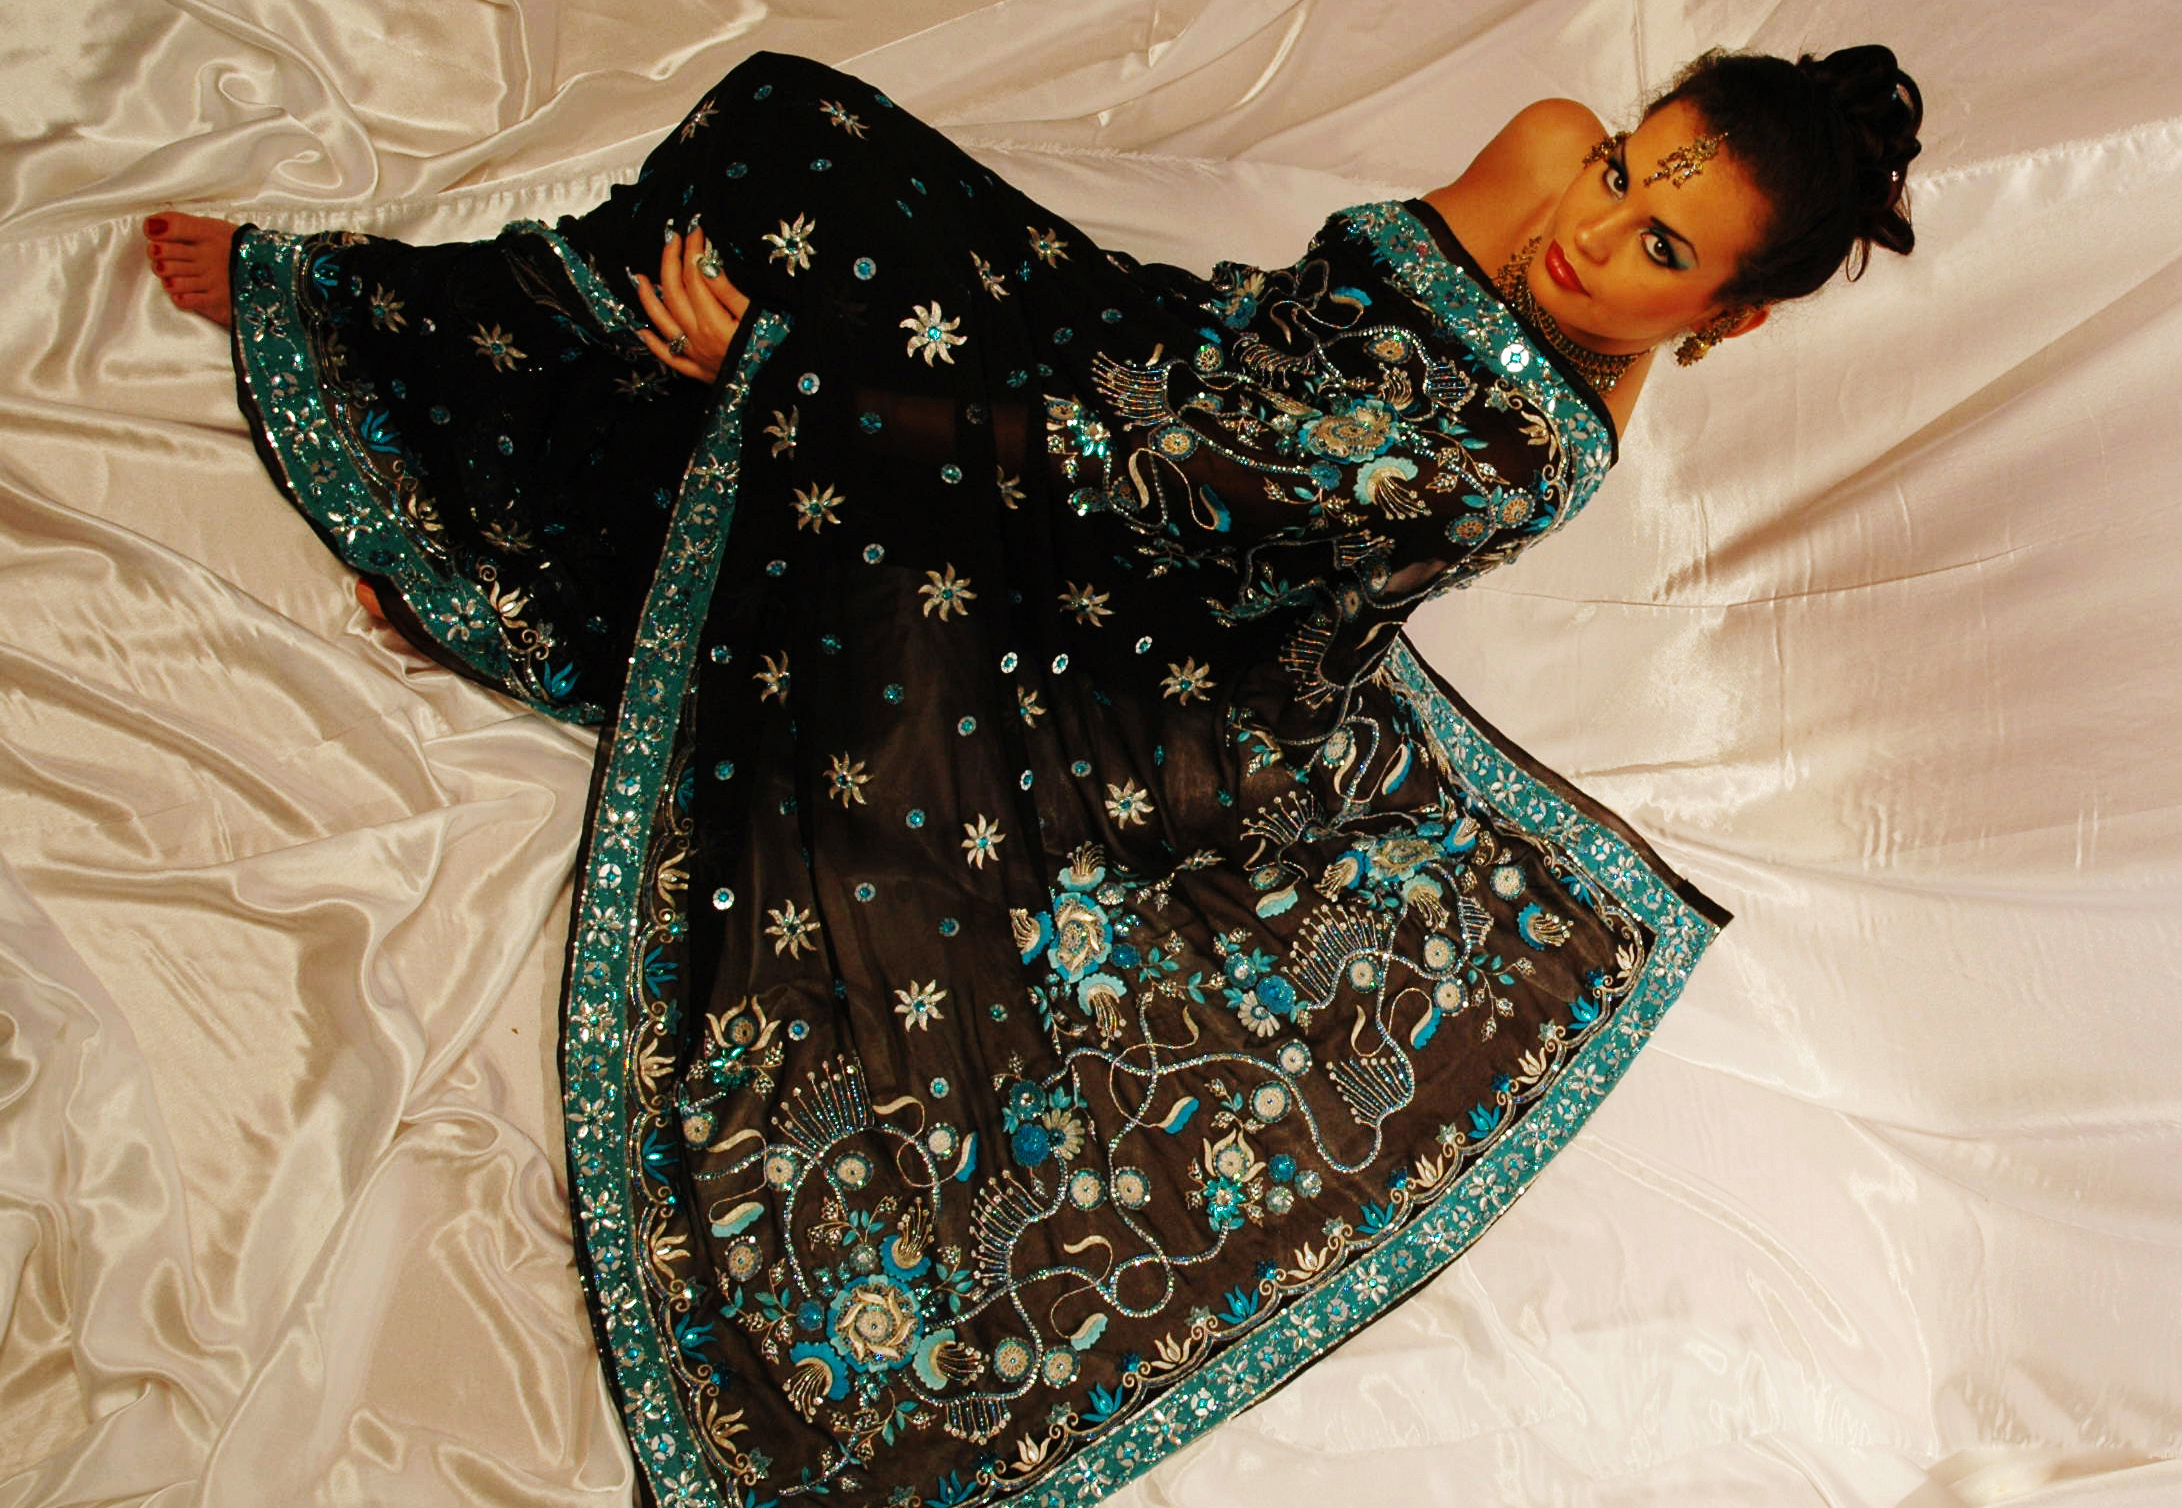 The Art of Sari Draping